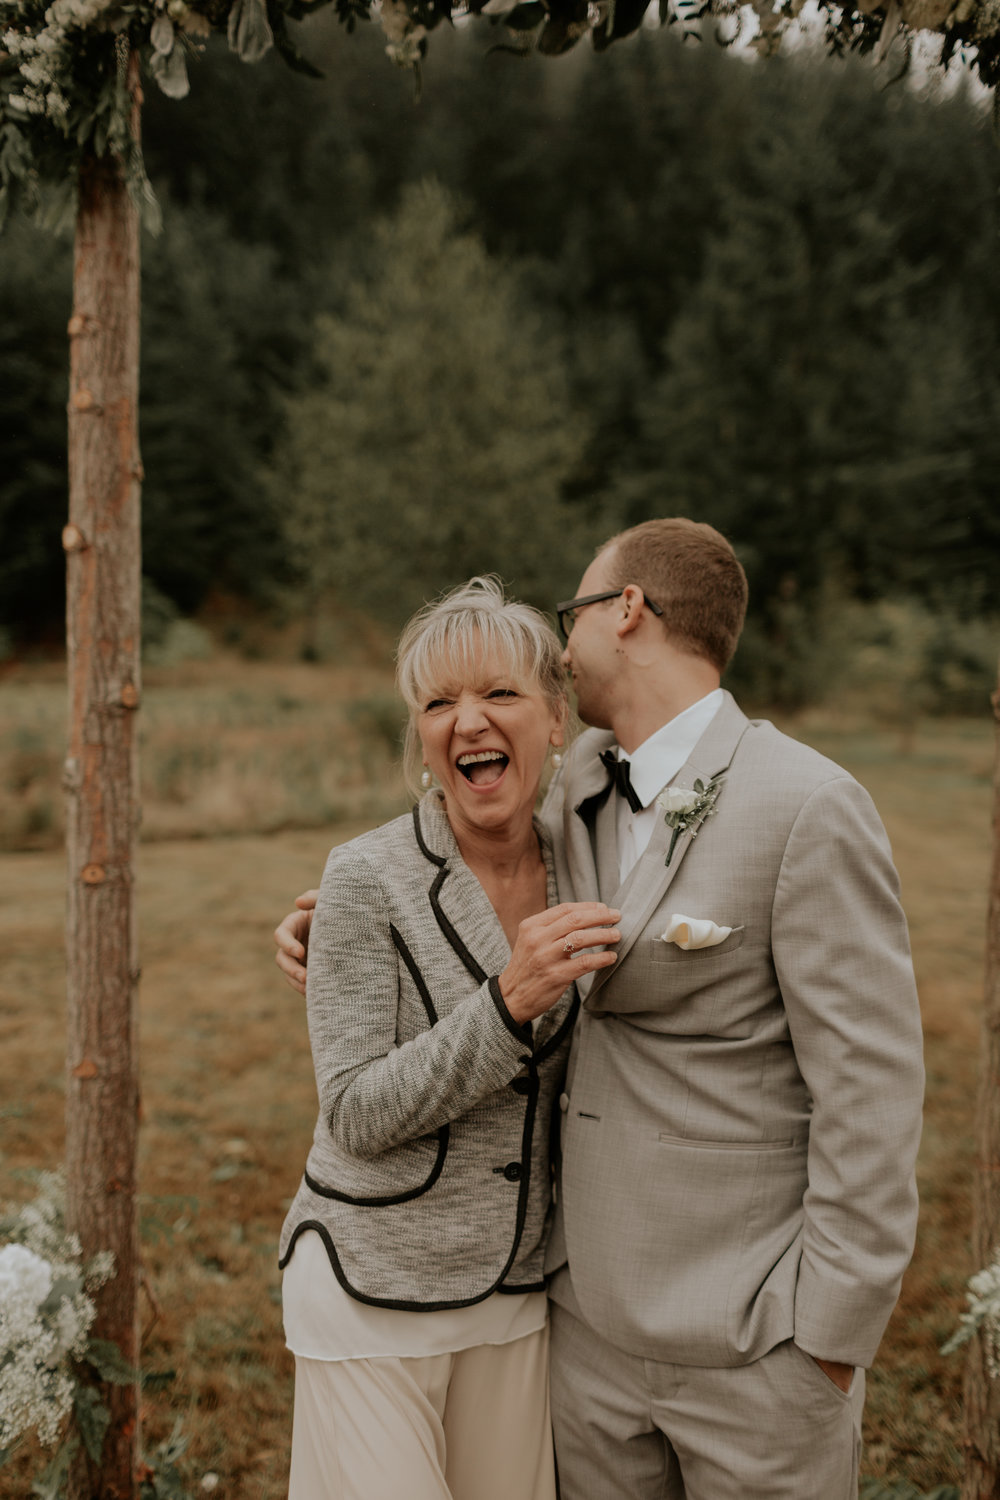 Port-Angeles-elopement-wedding-pnw-olympic-peninsula-photographer-portrait-kayladawnphoto-kayla-dawn-photography-olympic-national-park-116.jpg